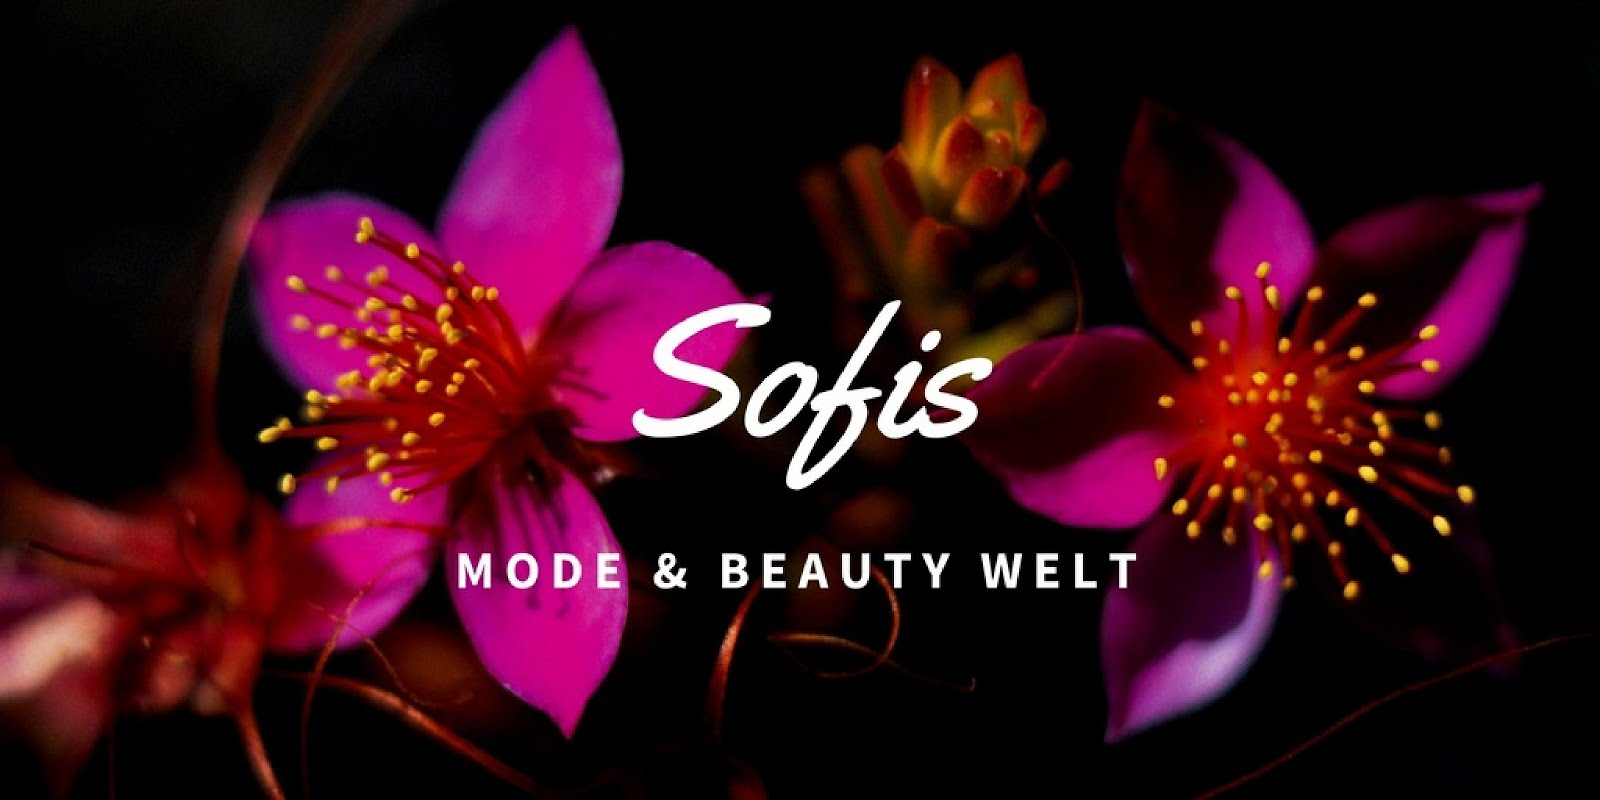 Sofis Mode & Beauty Welt